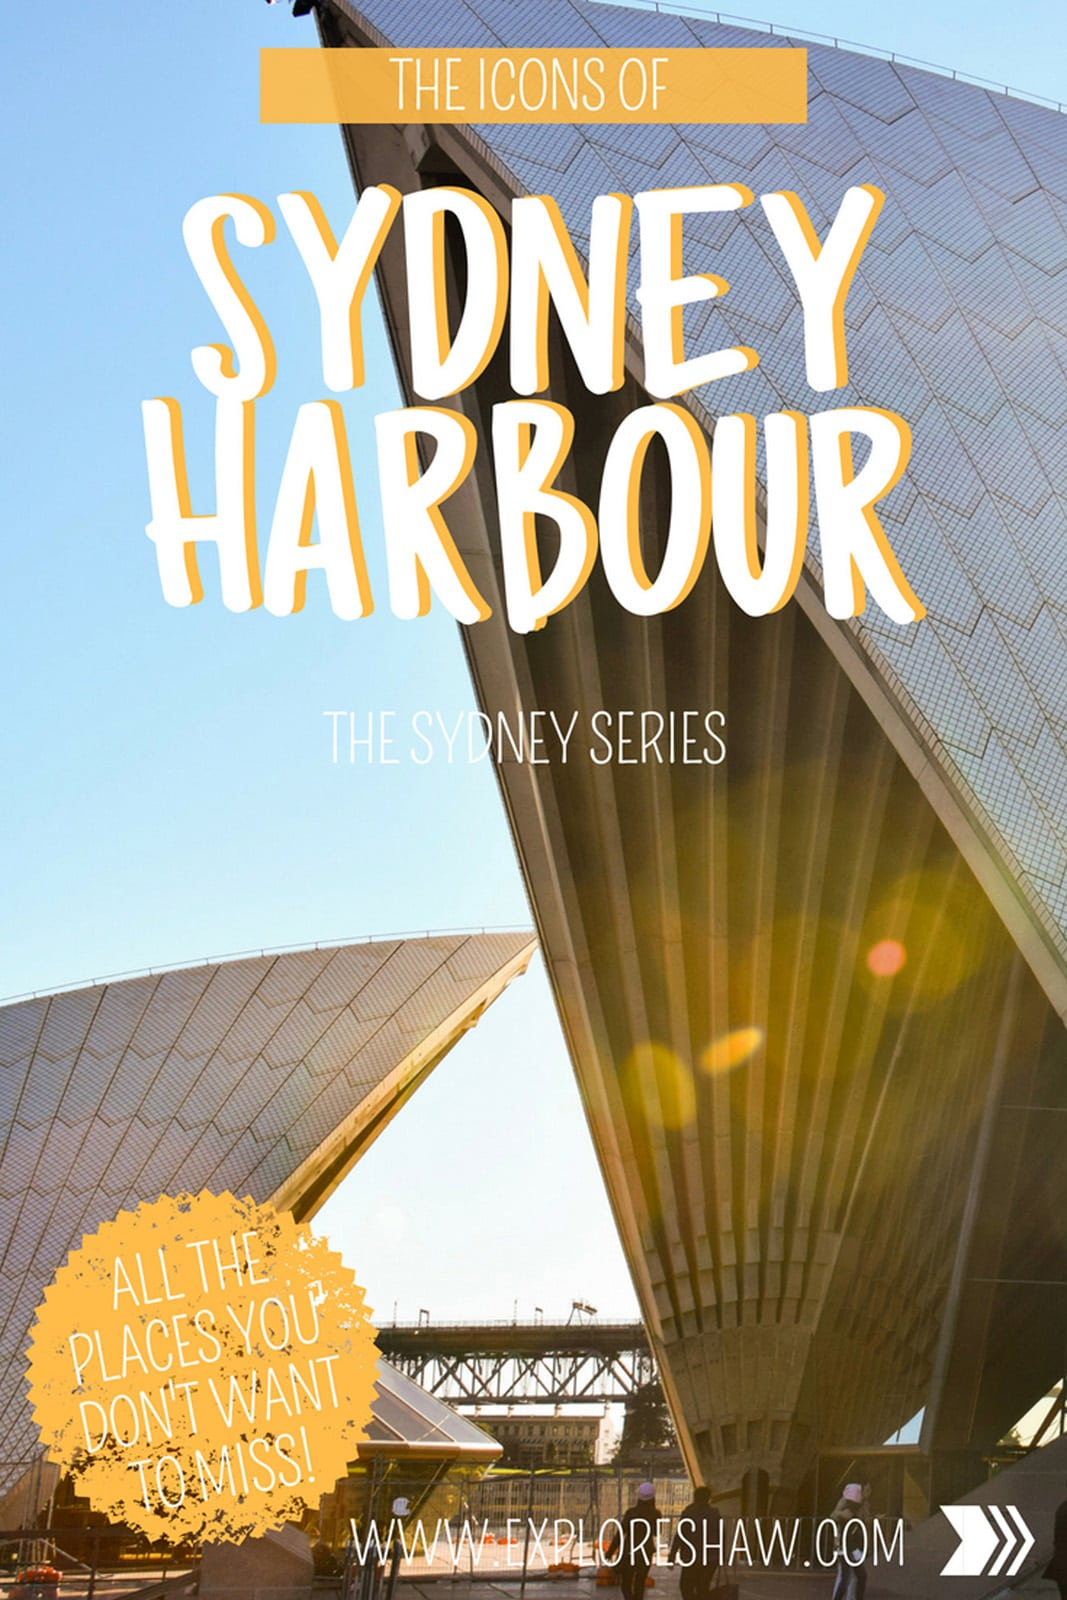 A complete list of all the can't miss experiences and icons of Sydney Harbour that should be on everyone's Sydney bucket list. #Australia #Sydney #NewSouthWales